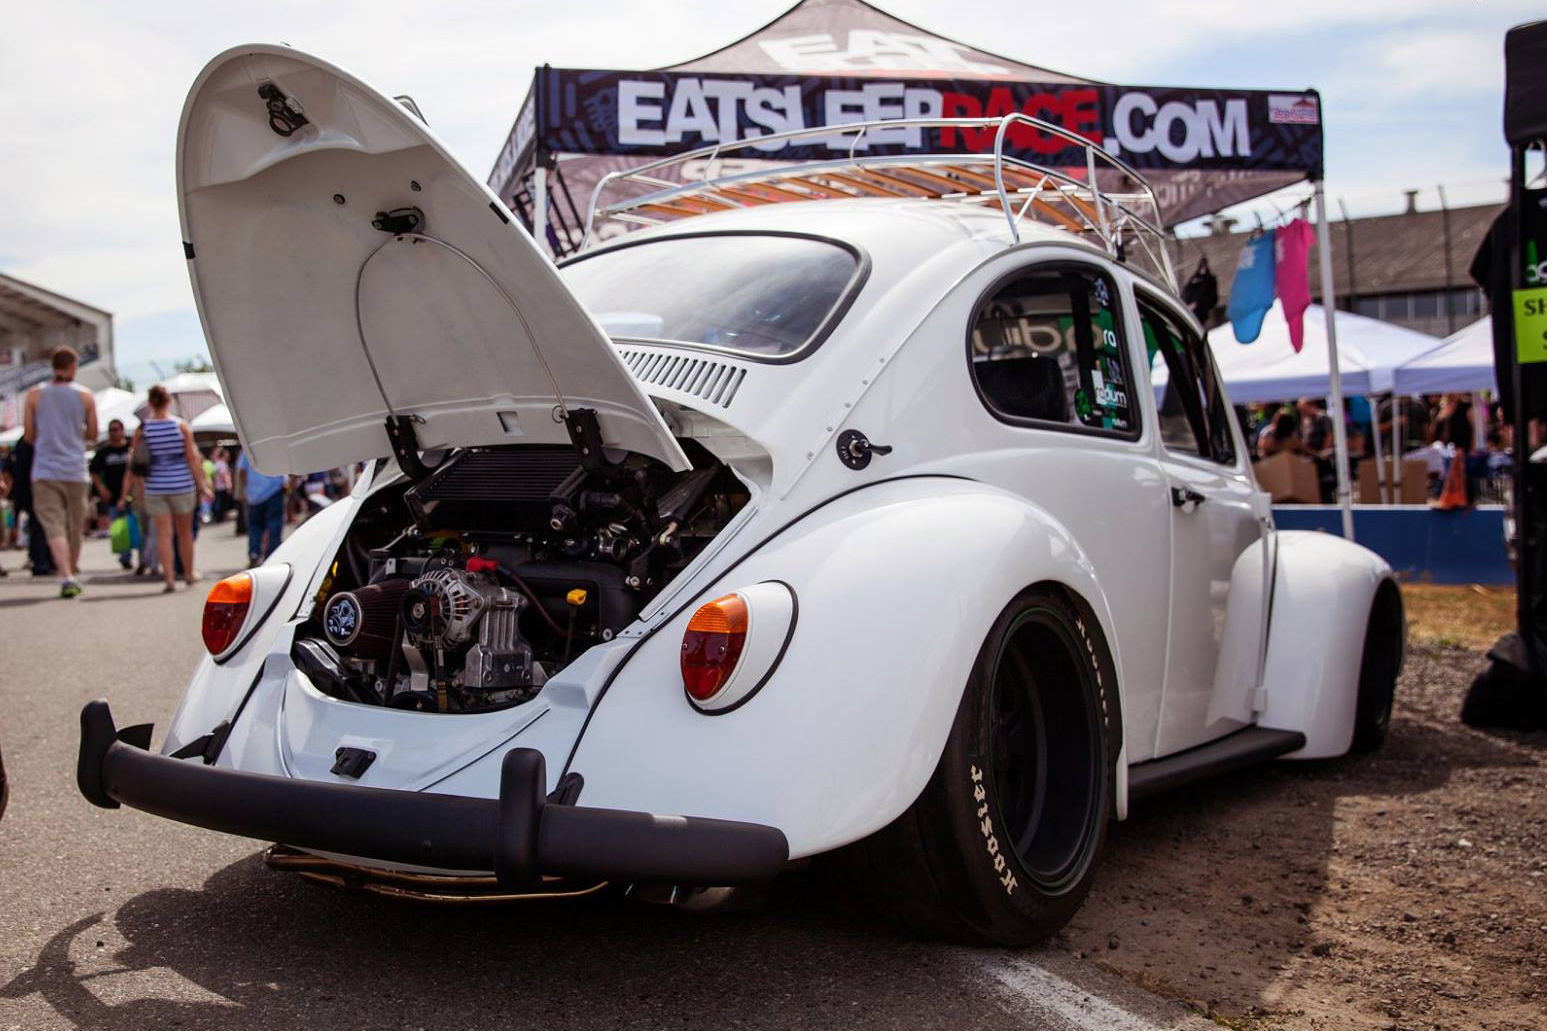 For Sale 1965 Vw Beetle With A Turbo Ej25 Engine Swap Depot